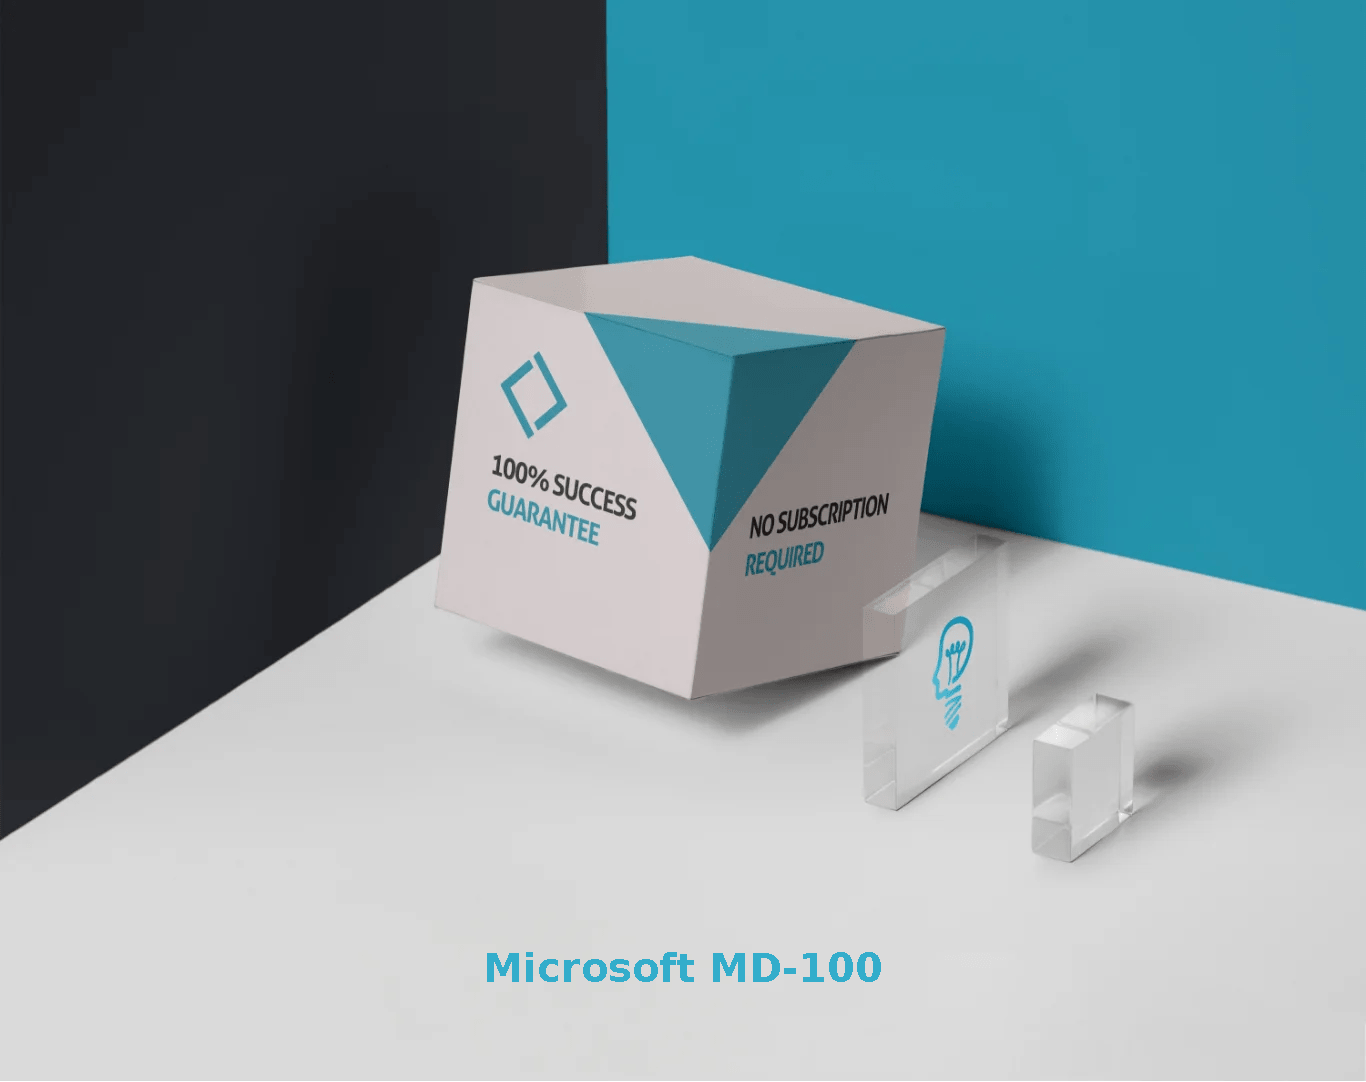 Microsoft MD-100 Exams